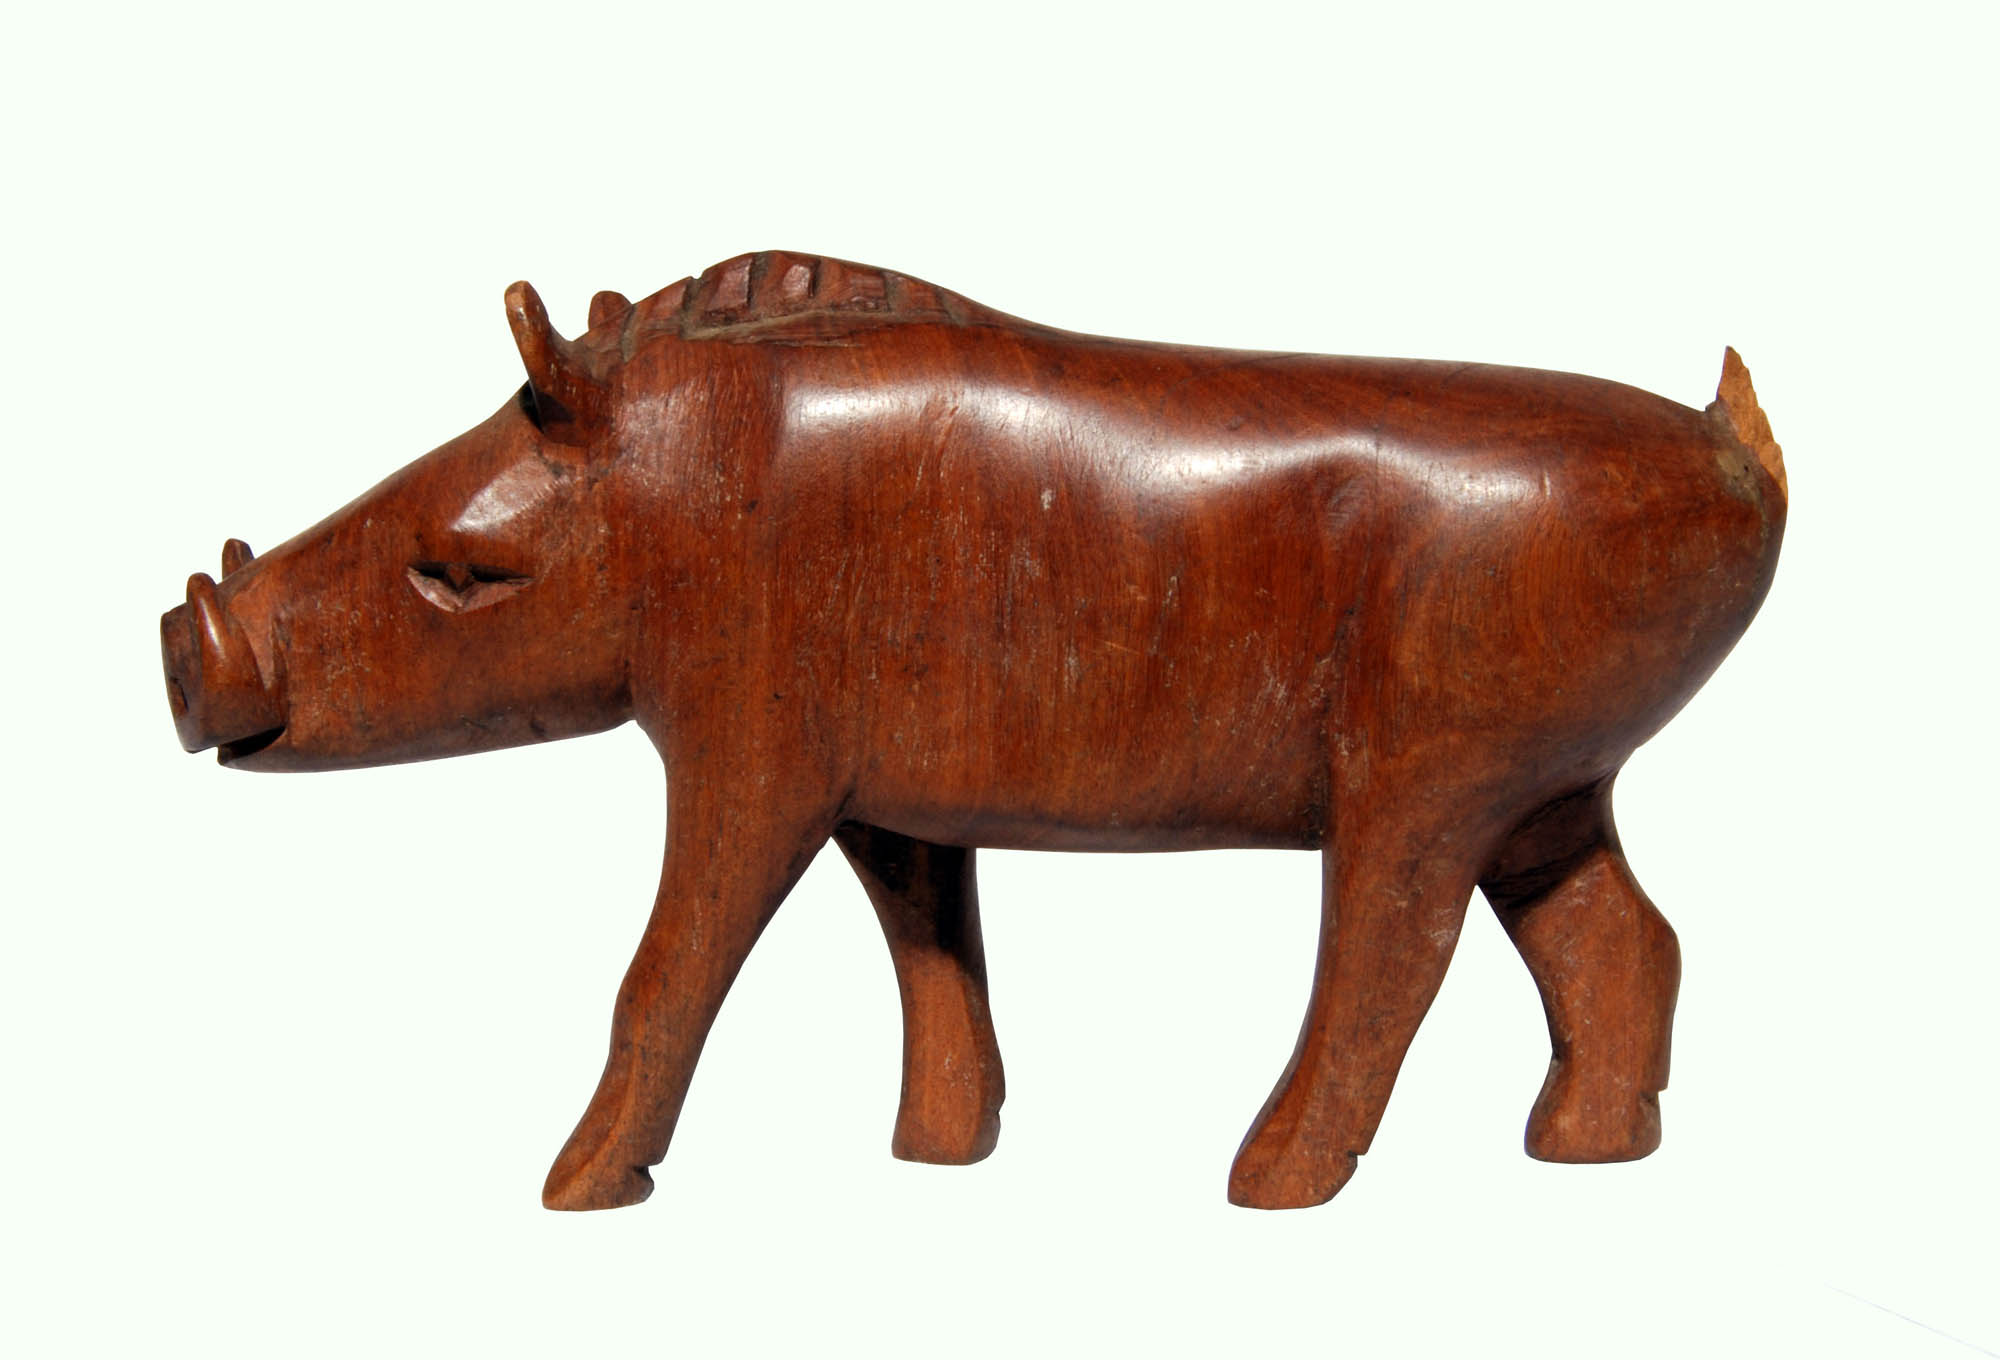 Wooden boar carving